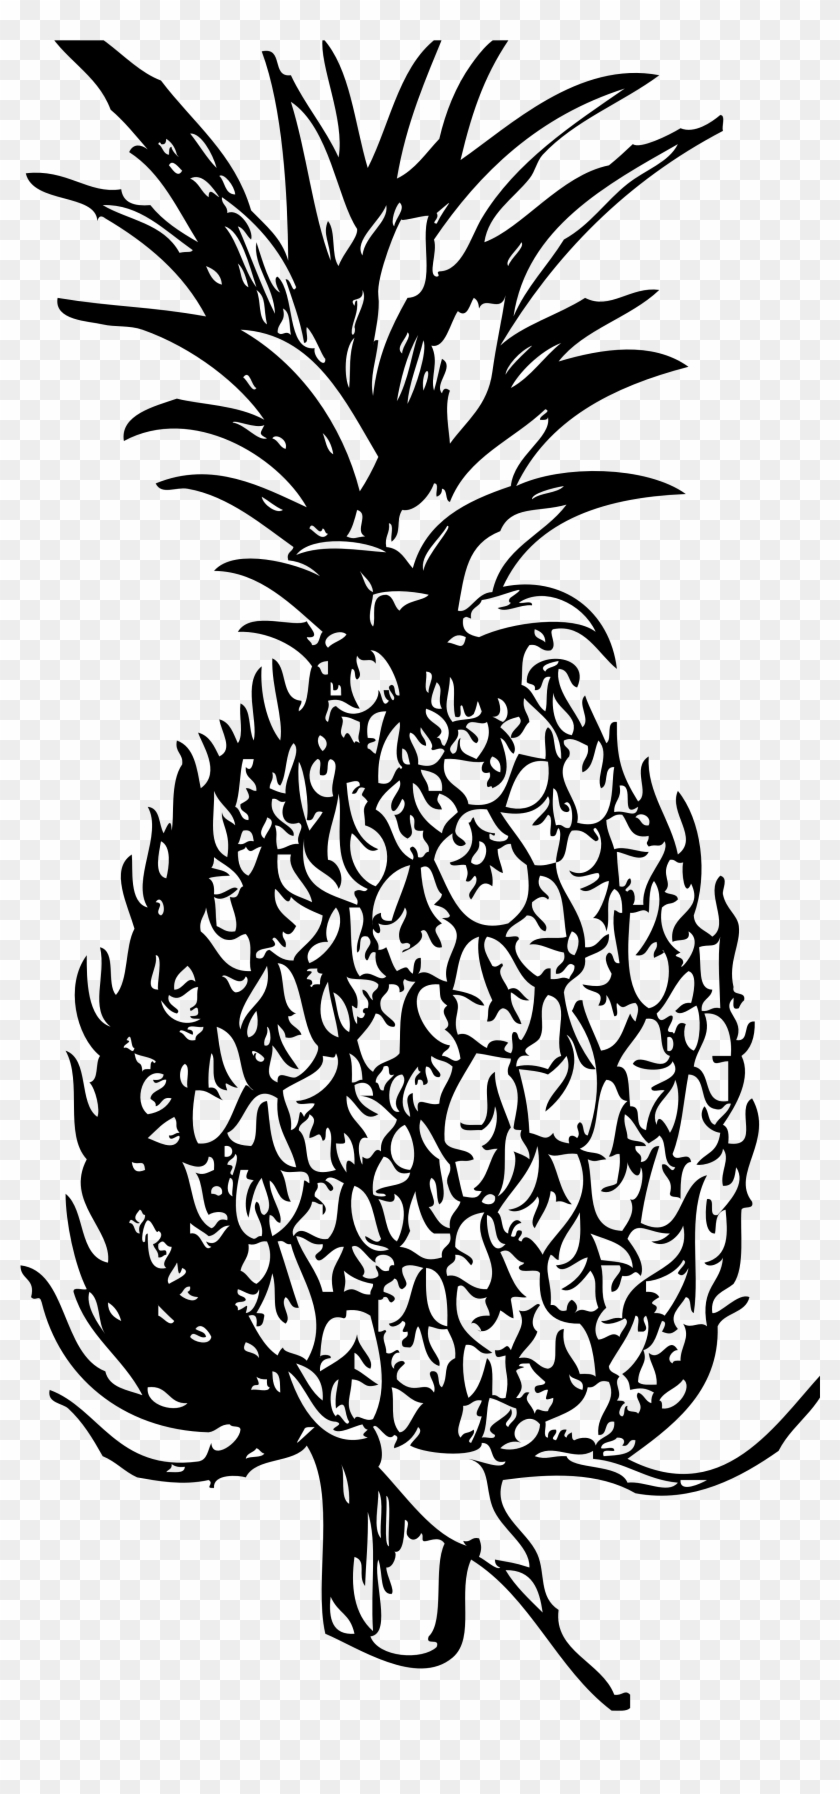 Free Pineapple Black And White Clipart Free Clip Art - Paineapple Clipart Black And White #30144